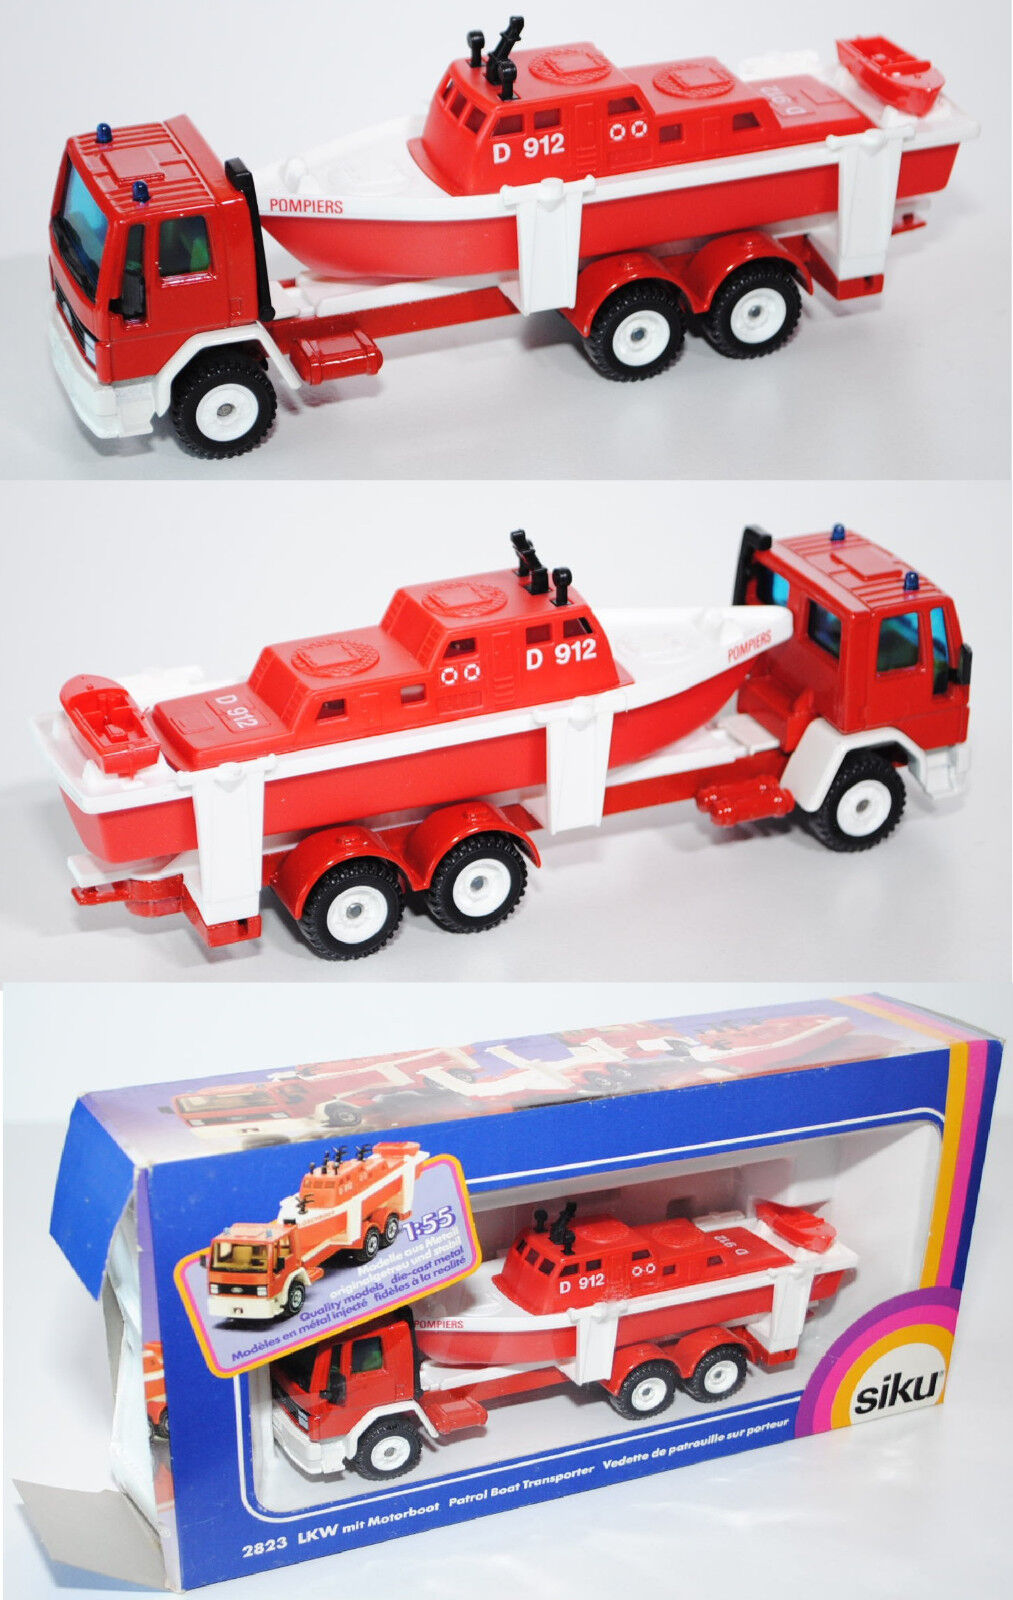 Siku Super 2823 00100 ford cargo con motor barco, Pompiers d 912